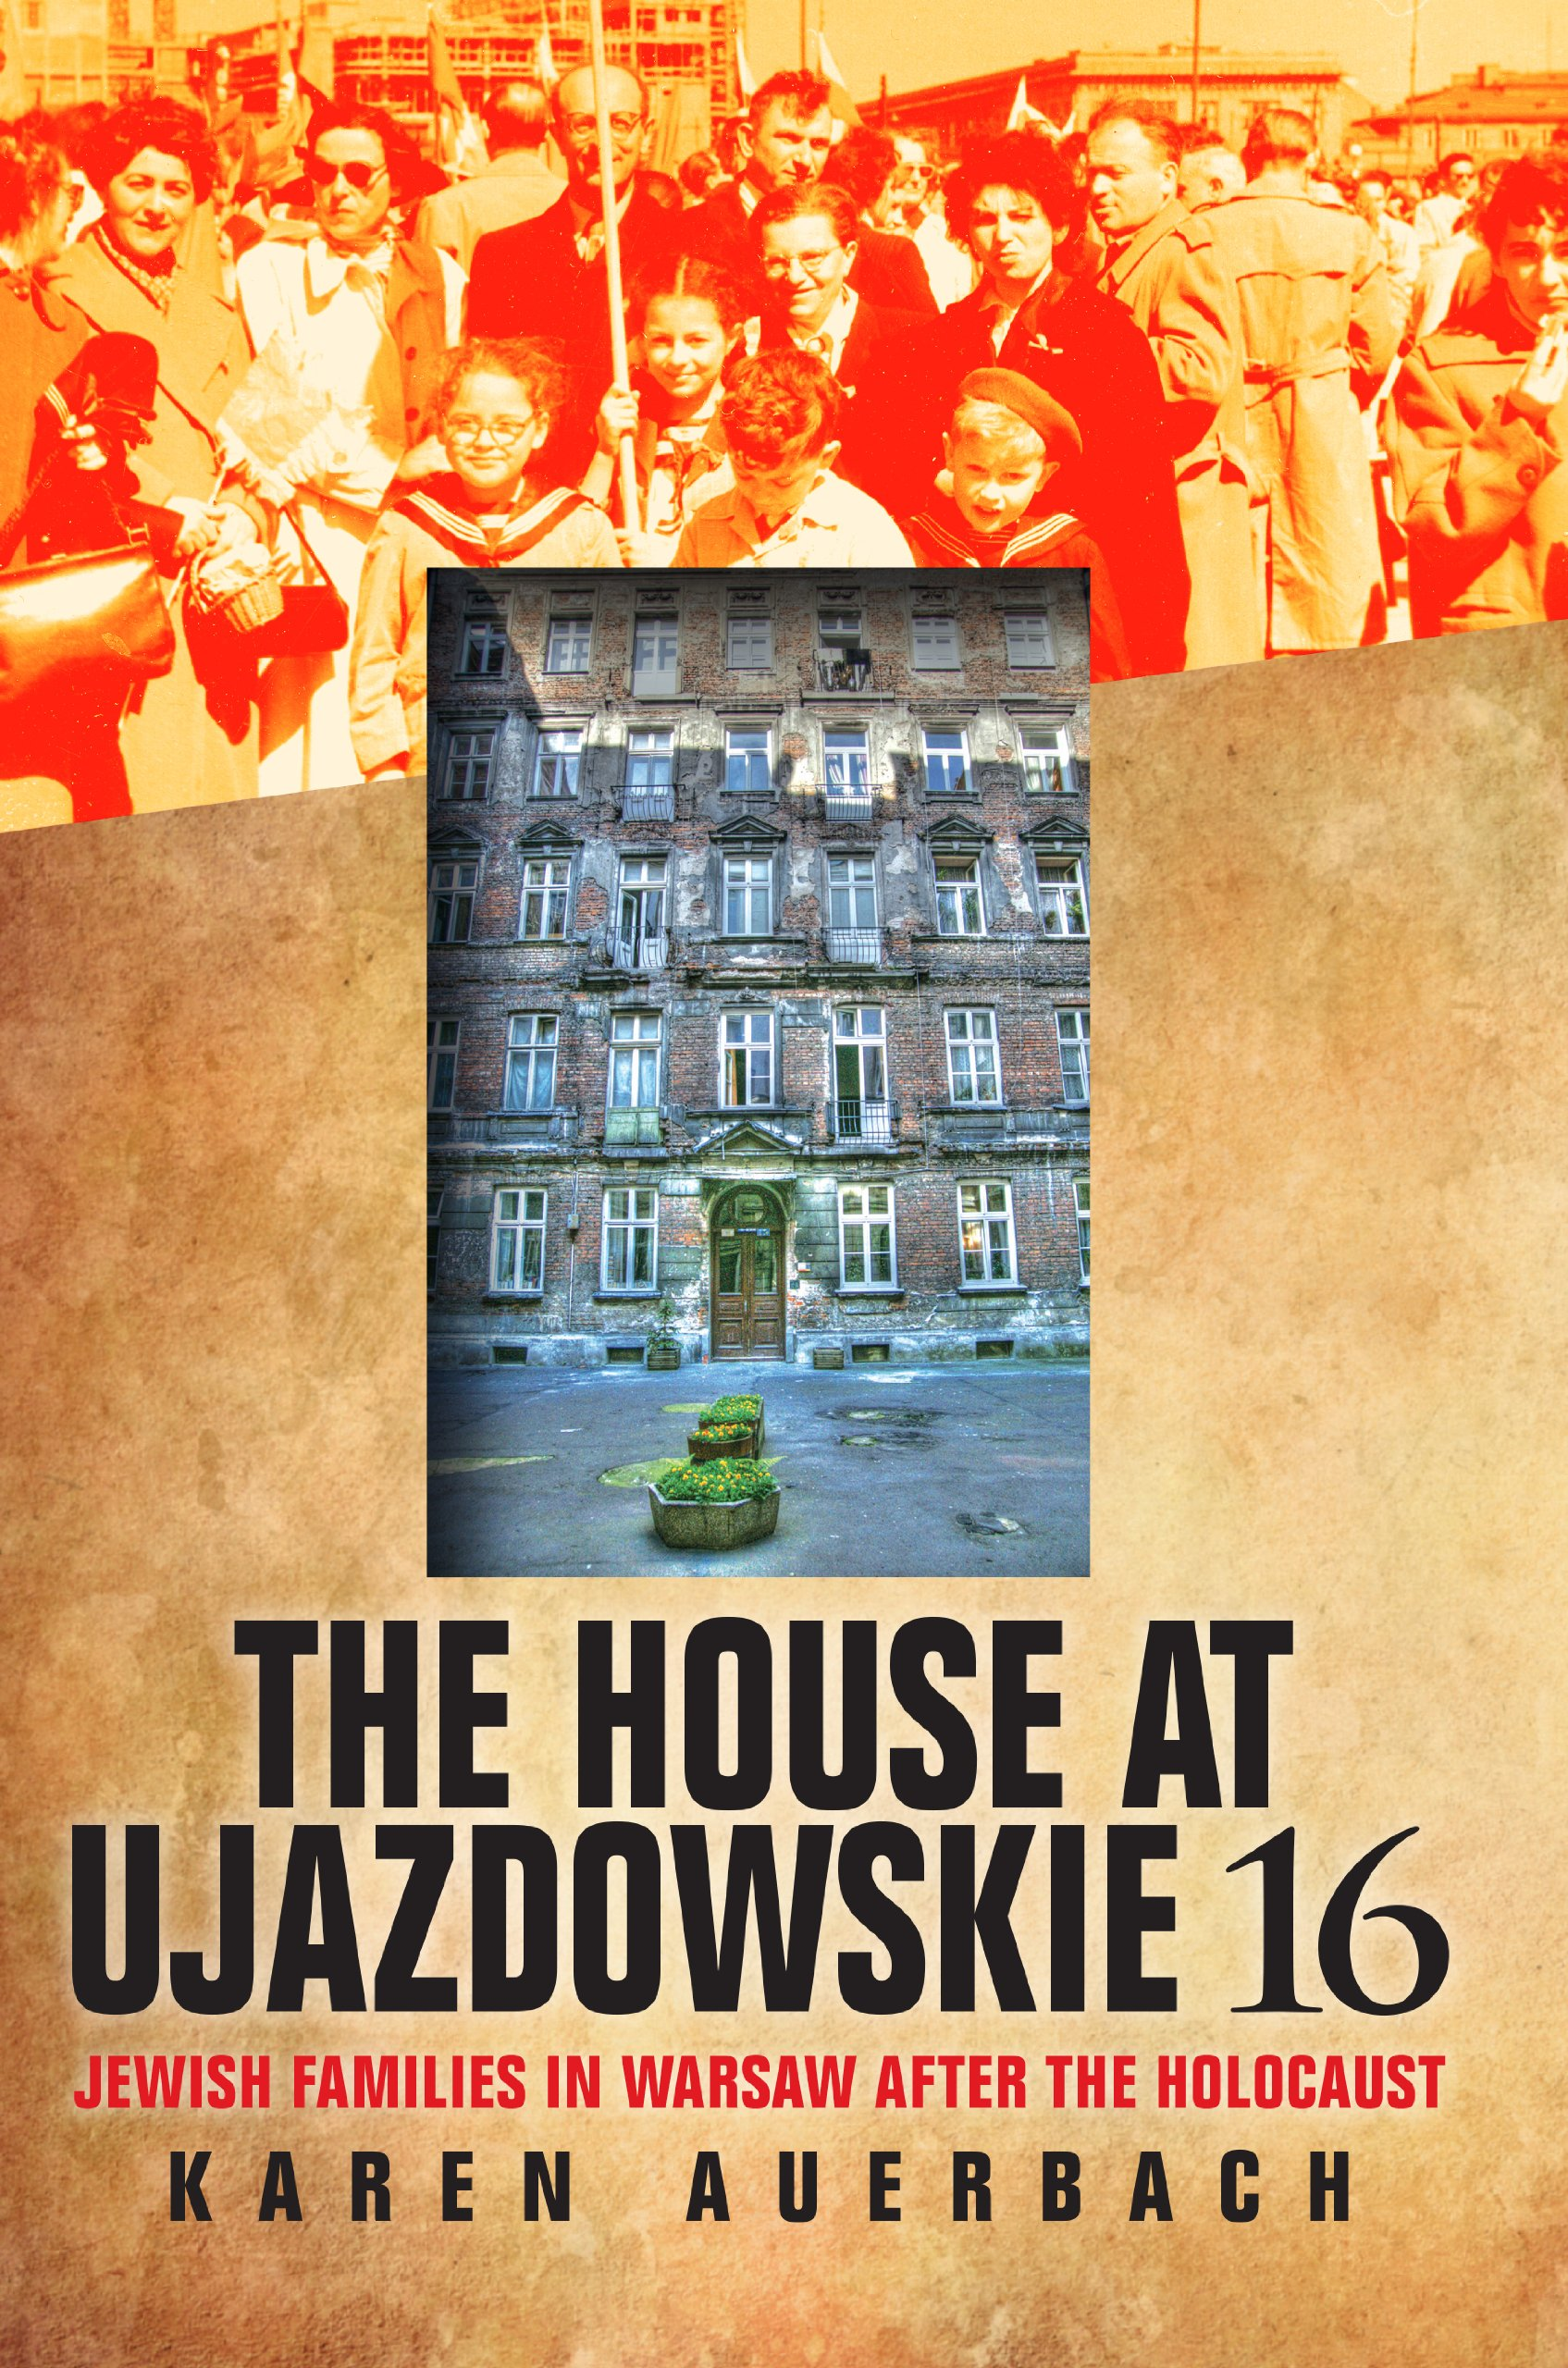 The house at ujazdowskie 16 jewish families in warsaw after the the house at ujazdowskie 16 jewish families in warsaw after the holocaust the modern jewish experience karen auerbach 9780253009074 amazon books fandeluxe Gallery